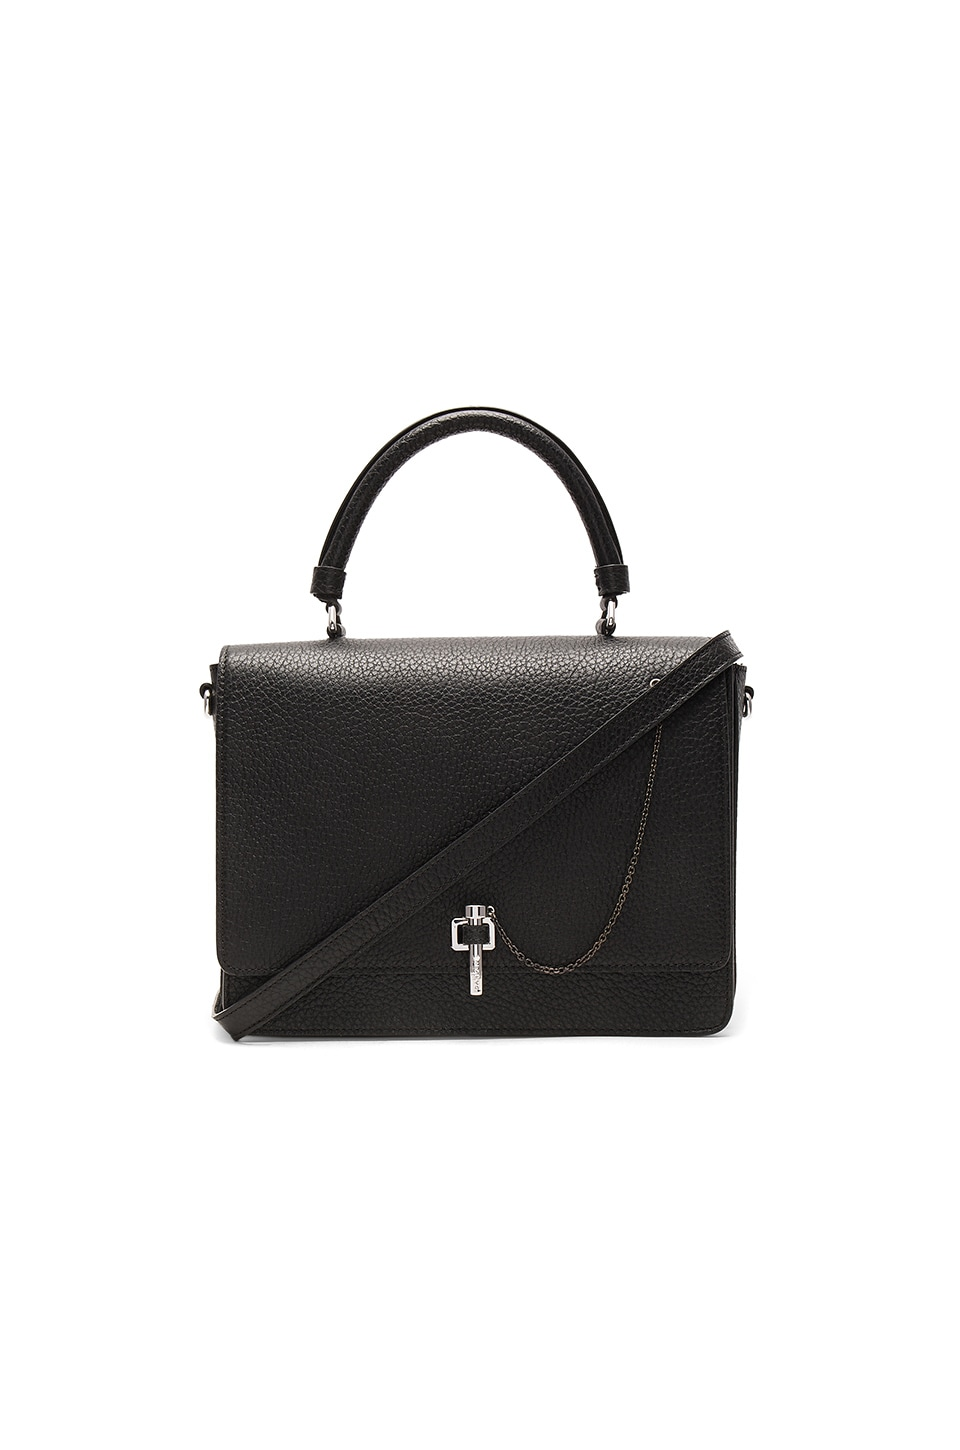 CARVEN Paris Leather Shoulder Bag